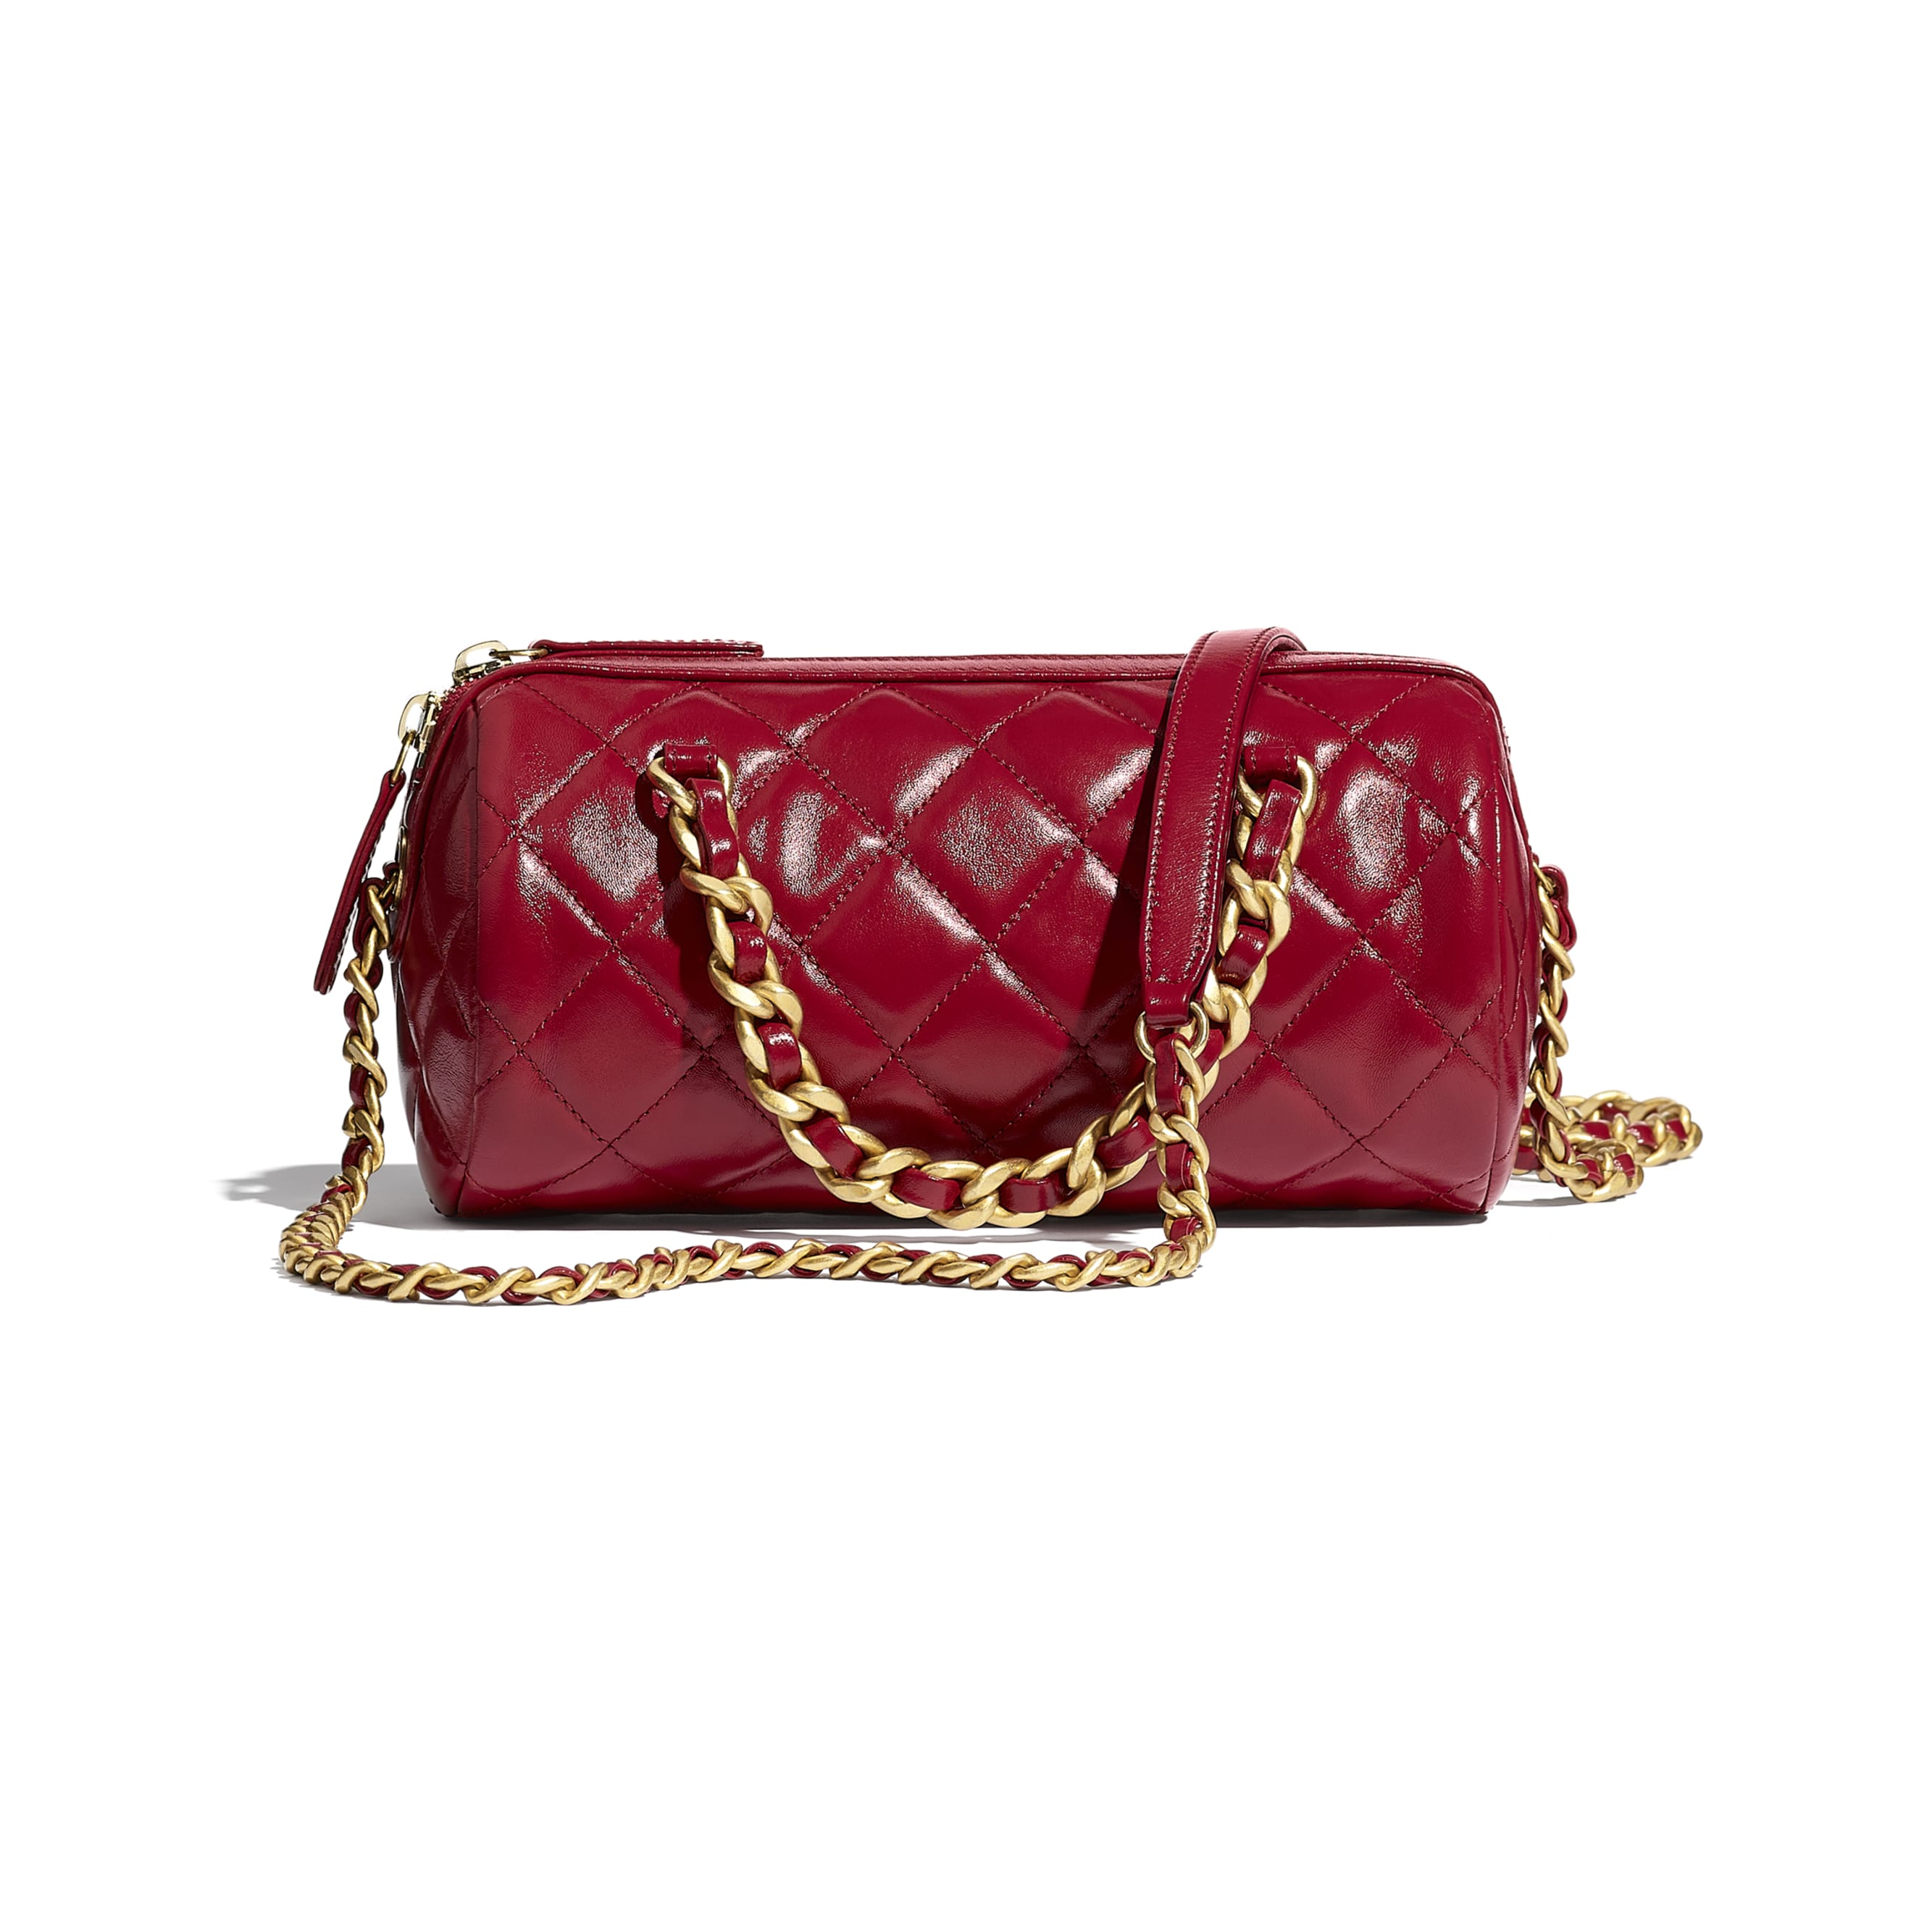 Small Bowling Bag - Pink - Shiny Lambskin & Gold-Tone Metal - CHANEL - Alternative view - see standard sized version